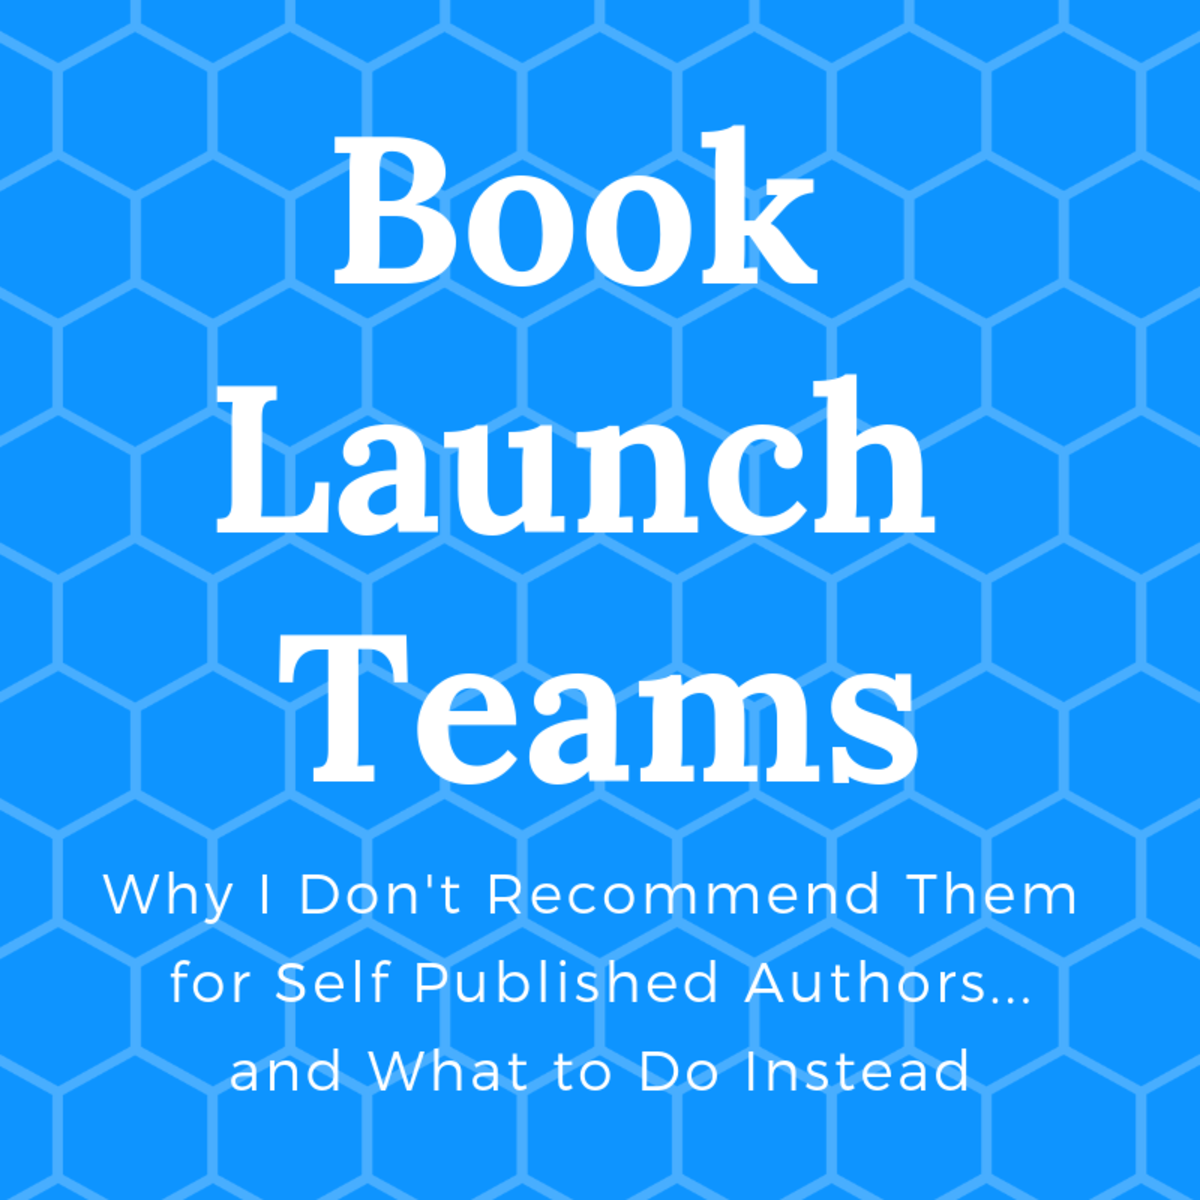 Book Launch Teams: Why I Don't Recommend Them for Self Publishing